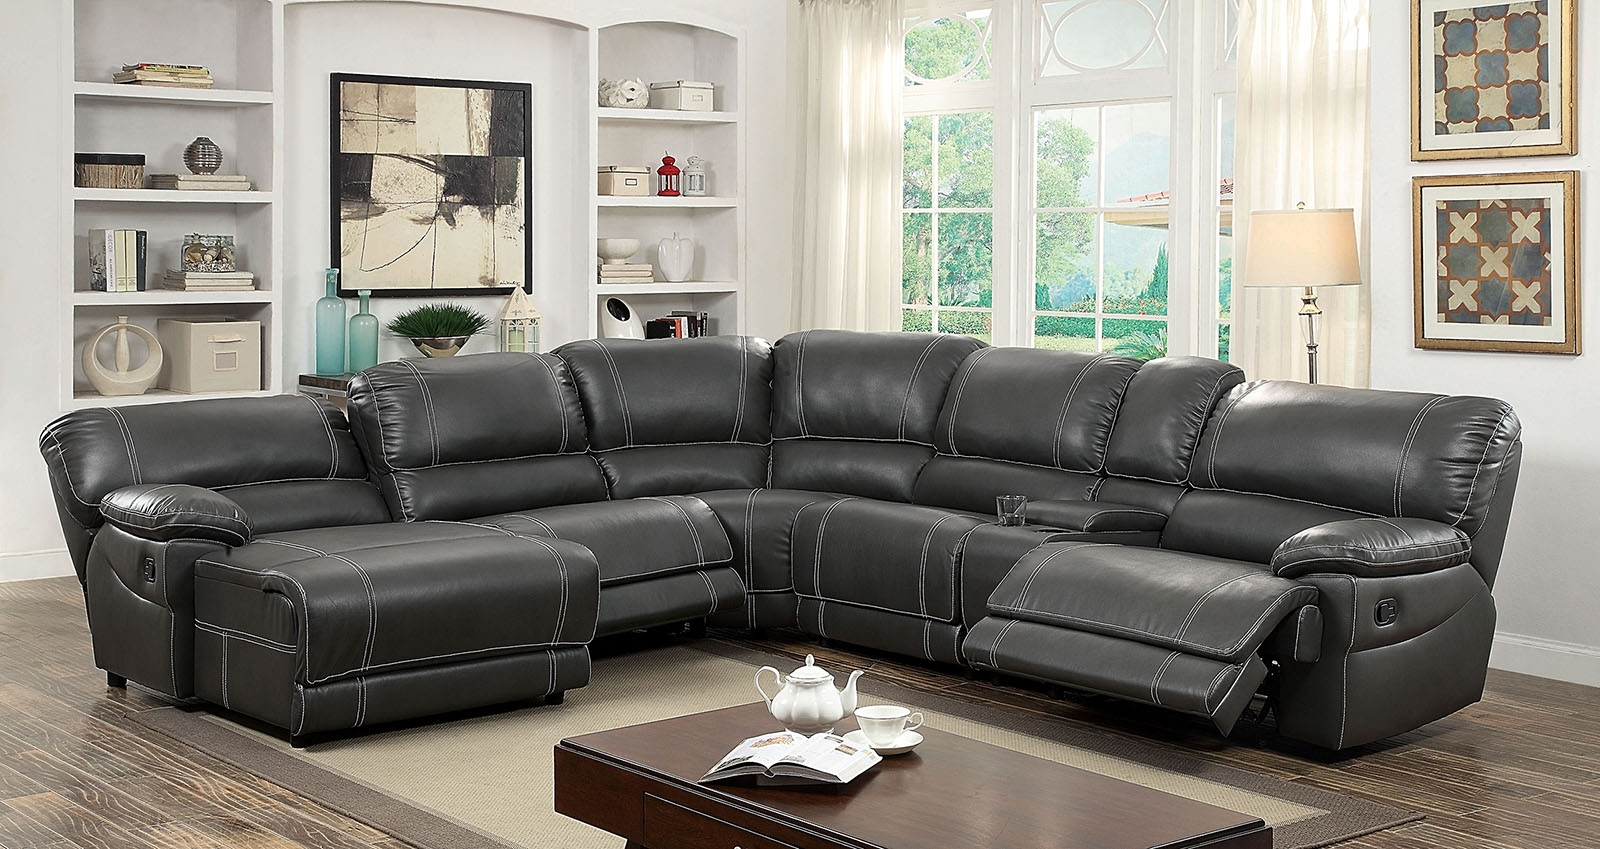 Furniture Of America 6131Gy Gray Reclining Chaise Console Sectional Within Orange County Ca Sectional Sofas (View 5 of 10)